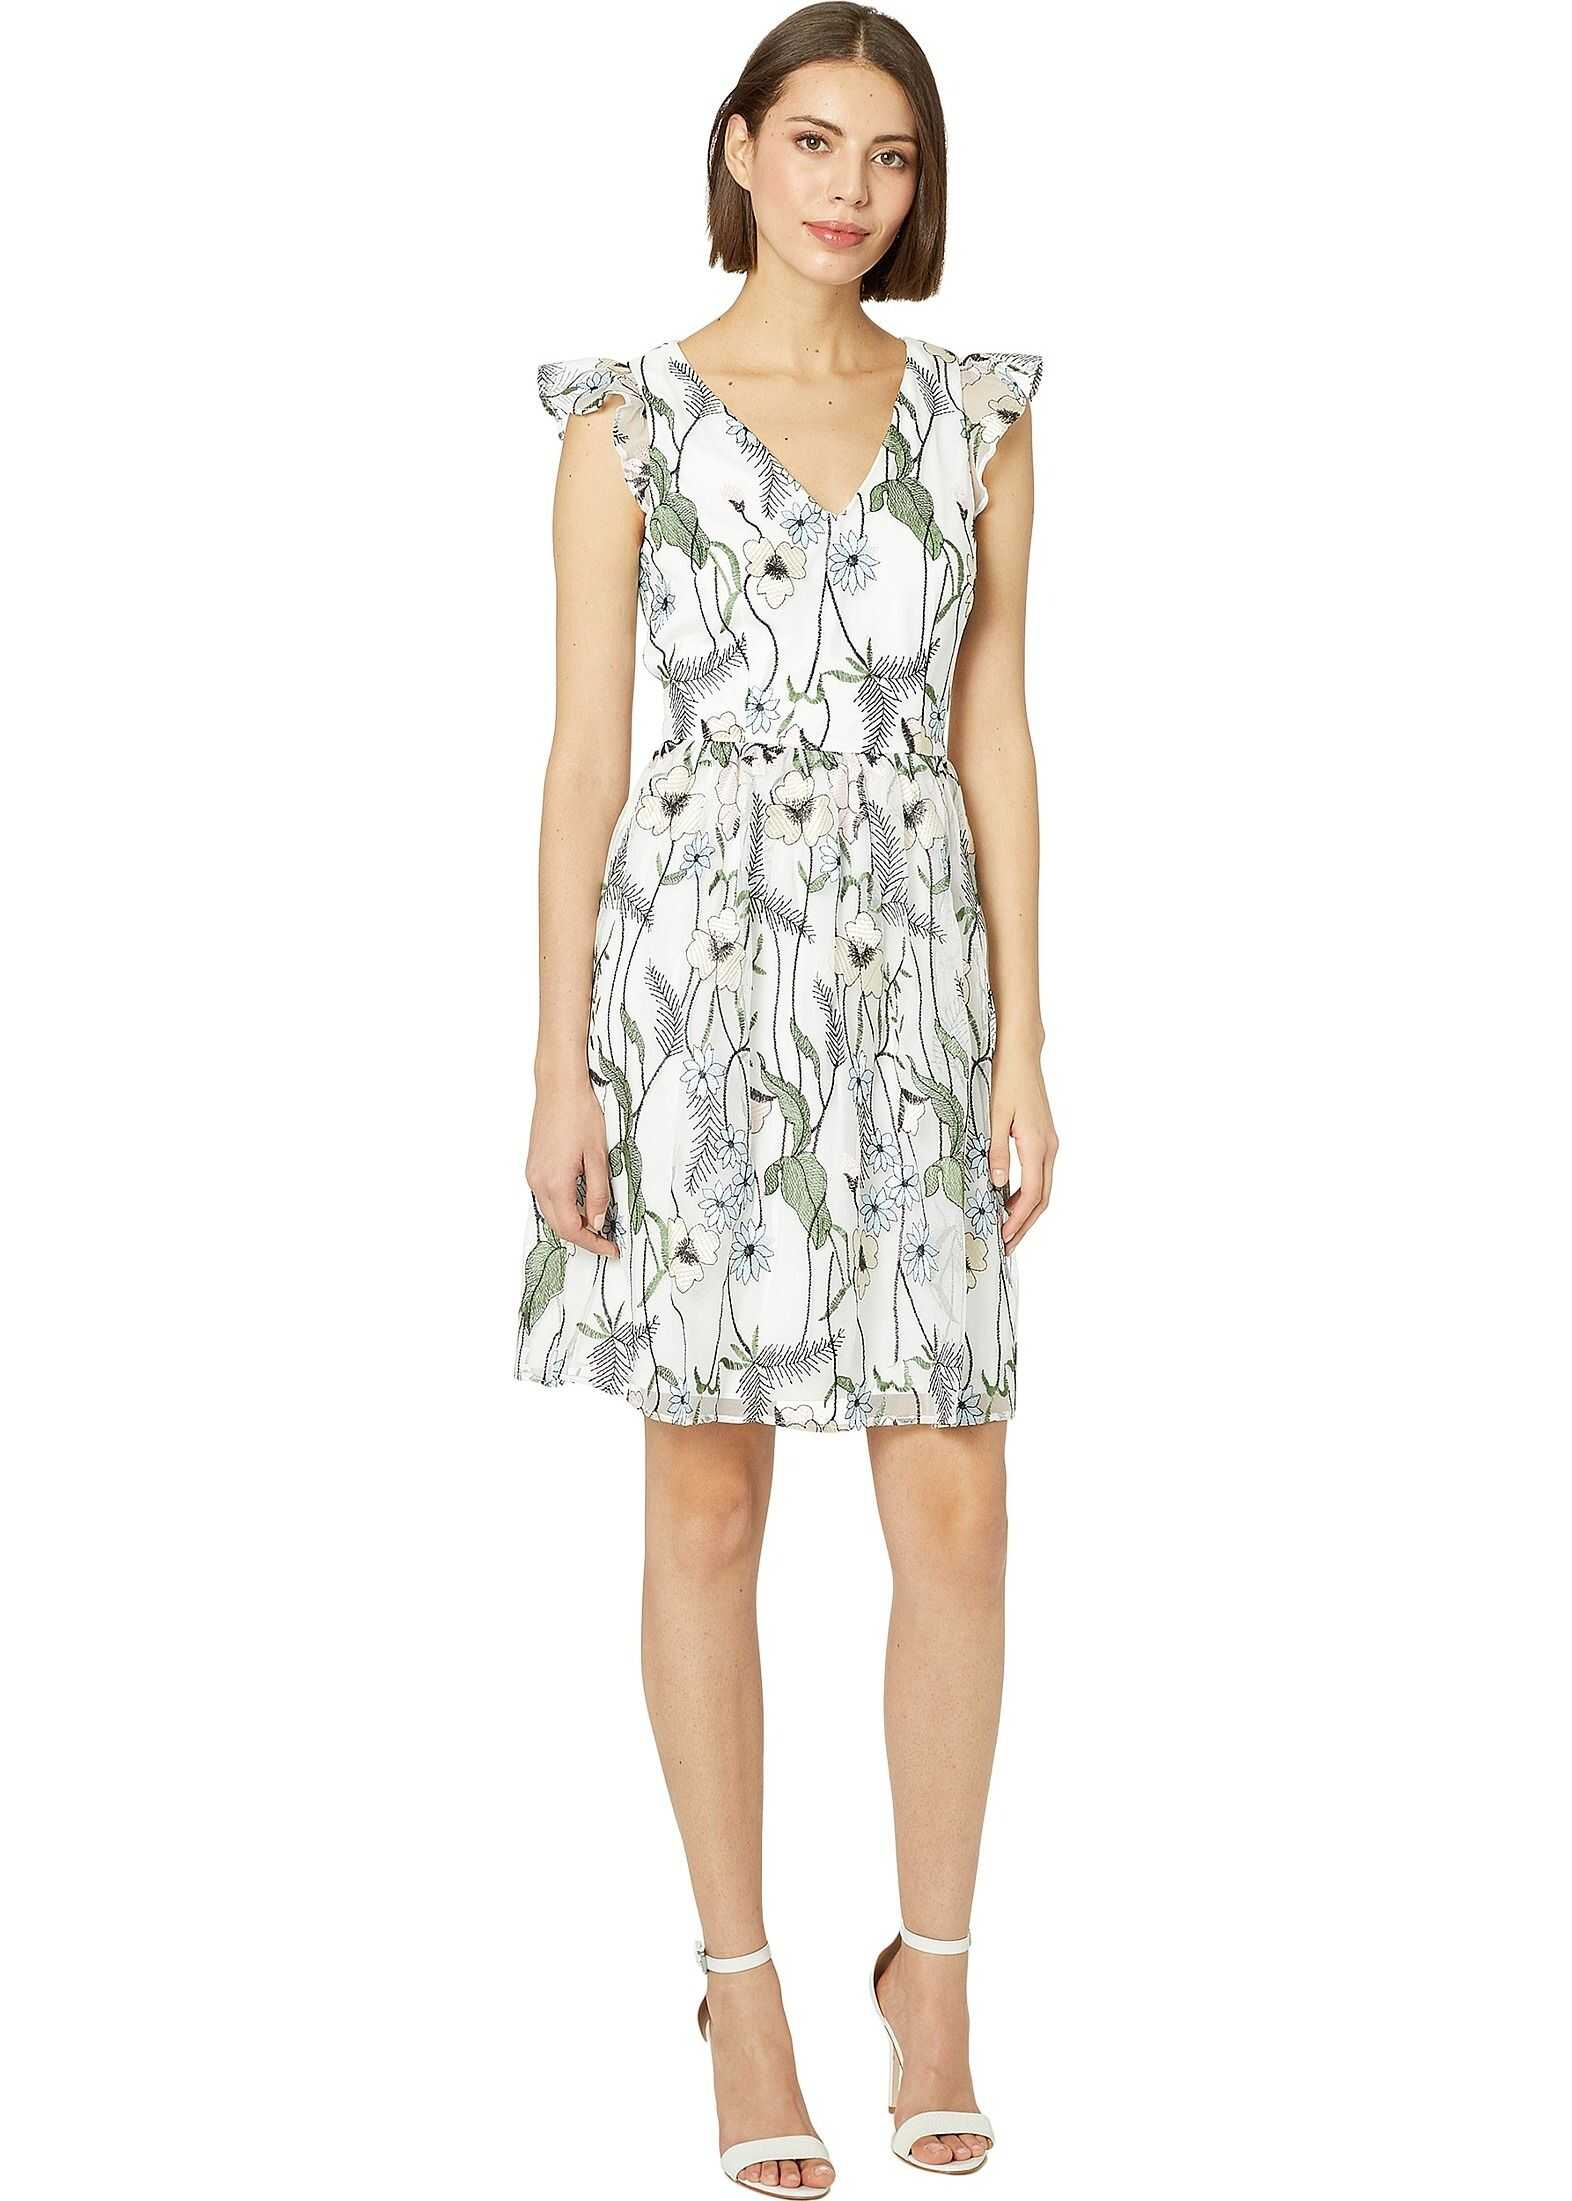 Adrianna Papell Pastel Paradise Embroidered Fit and Flare Dress Ivory Multi